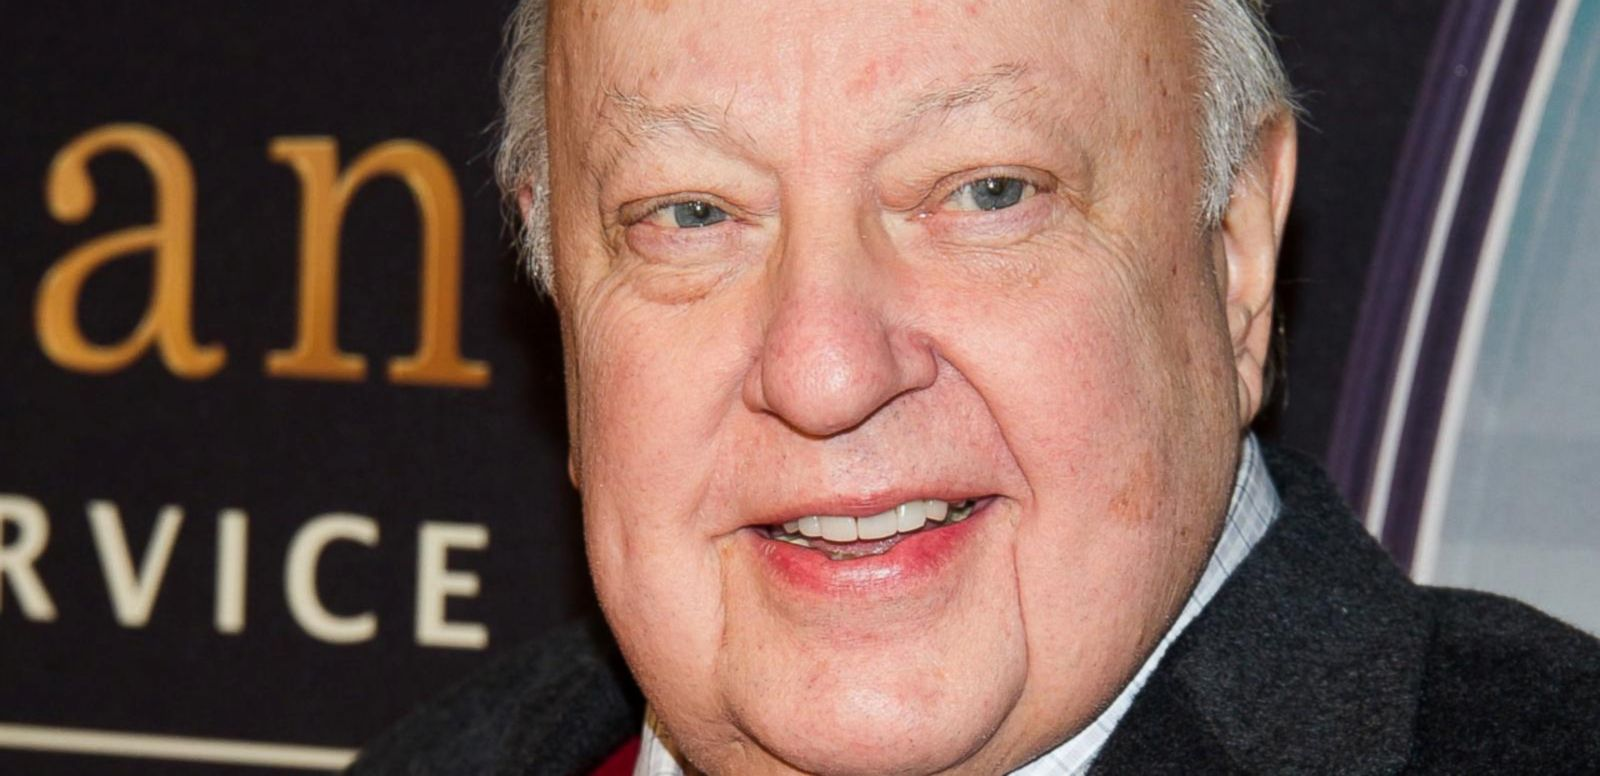 VIDEO: Donald Trump Defends Roger Ailes Amid Sexual Harassment Allegations